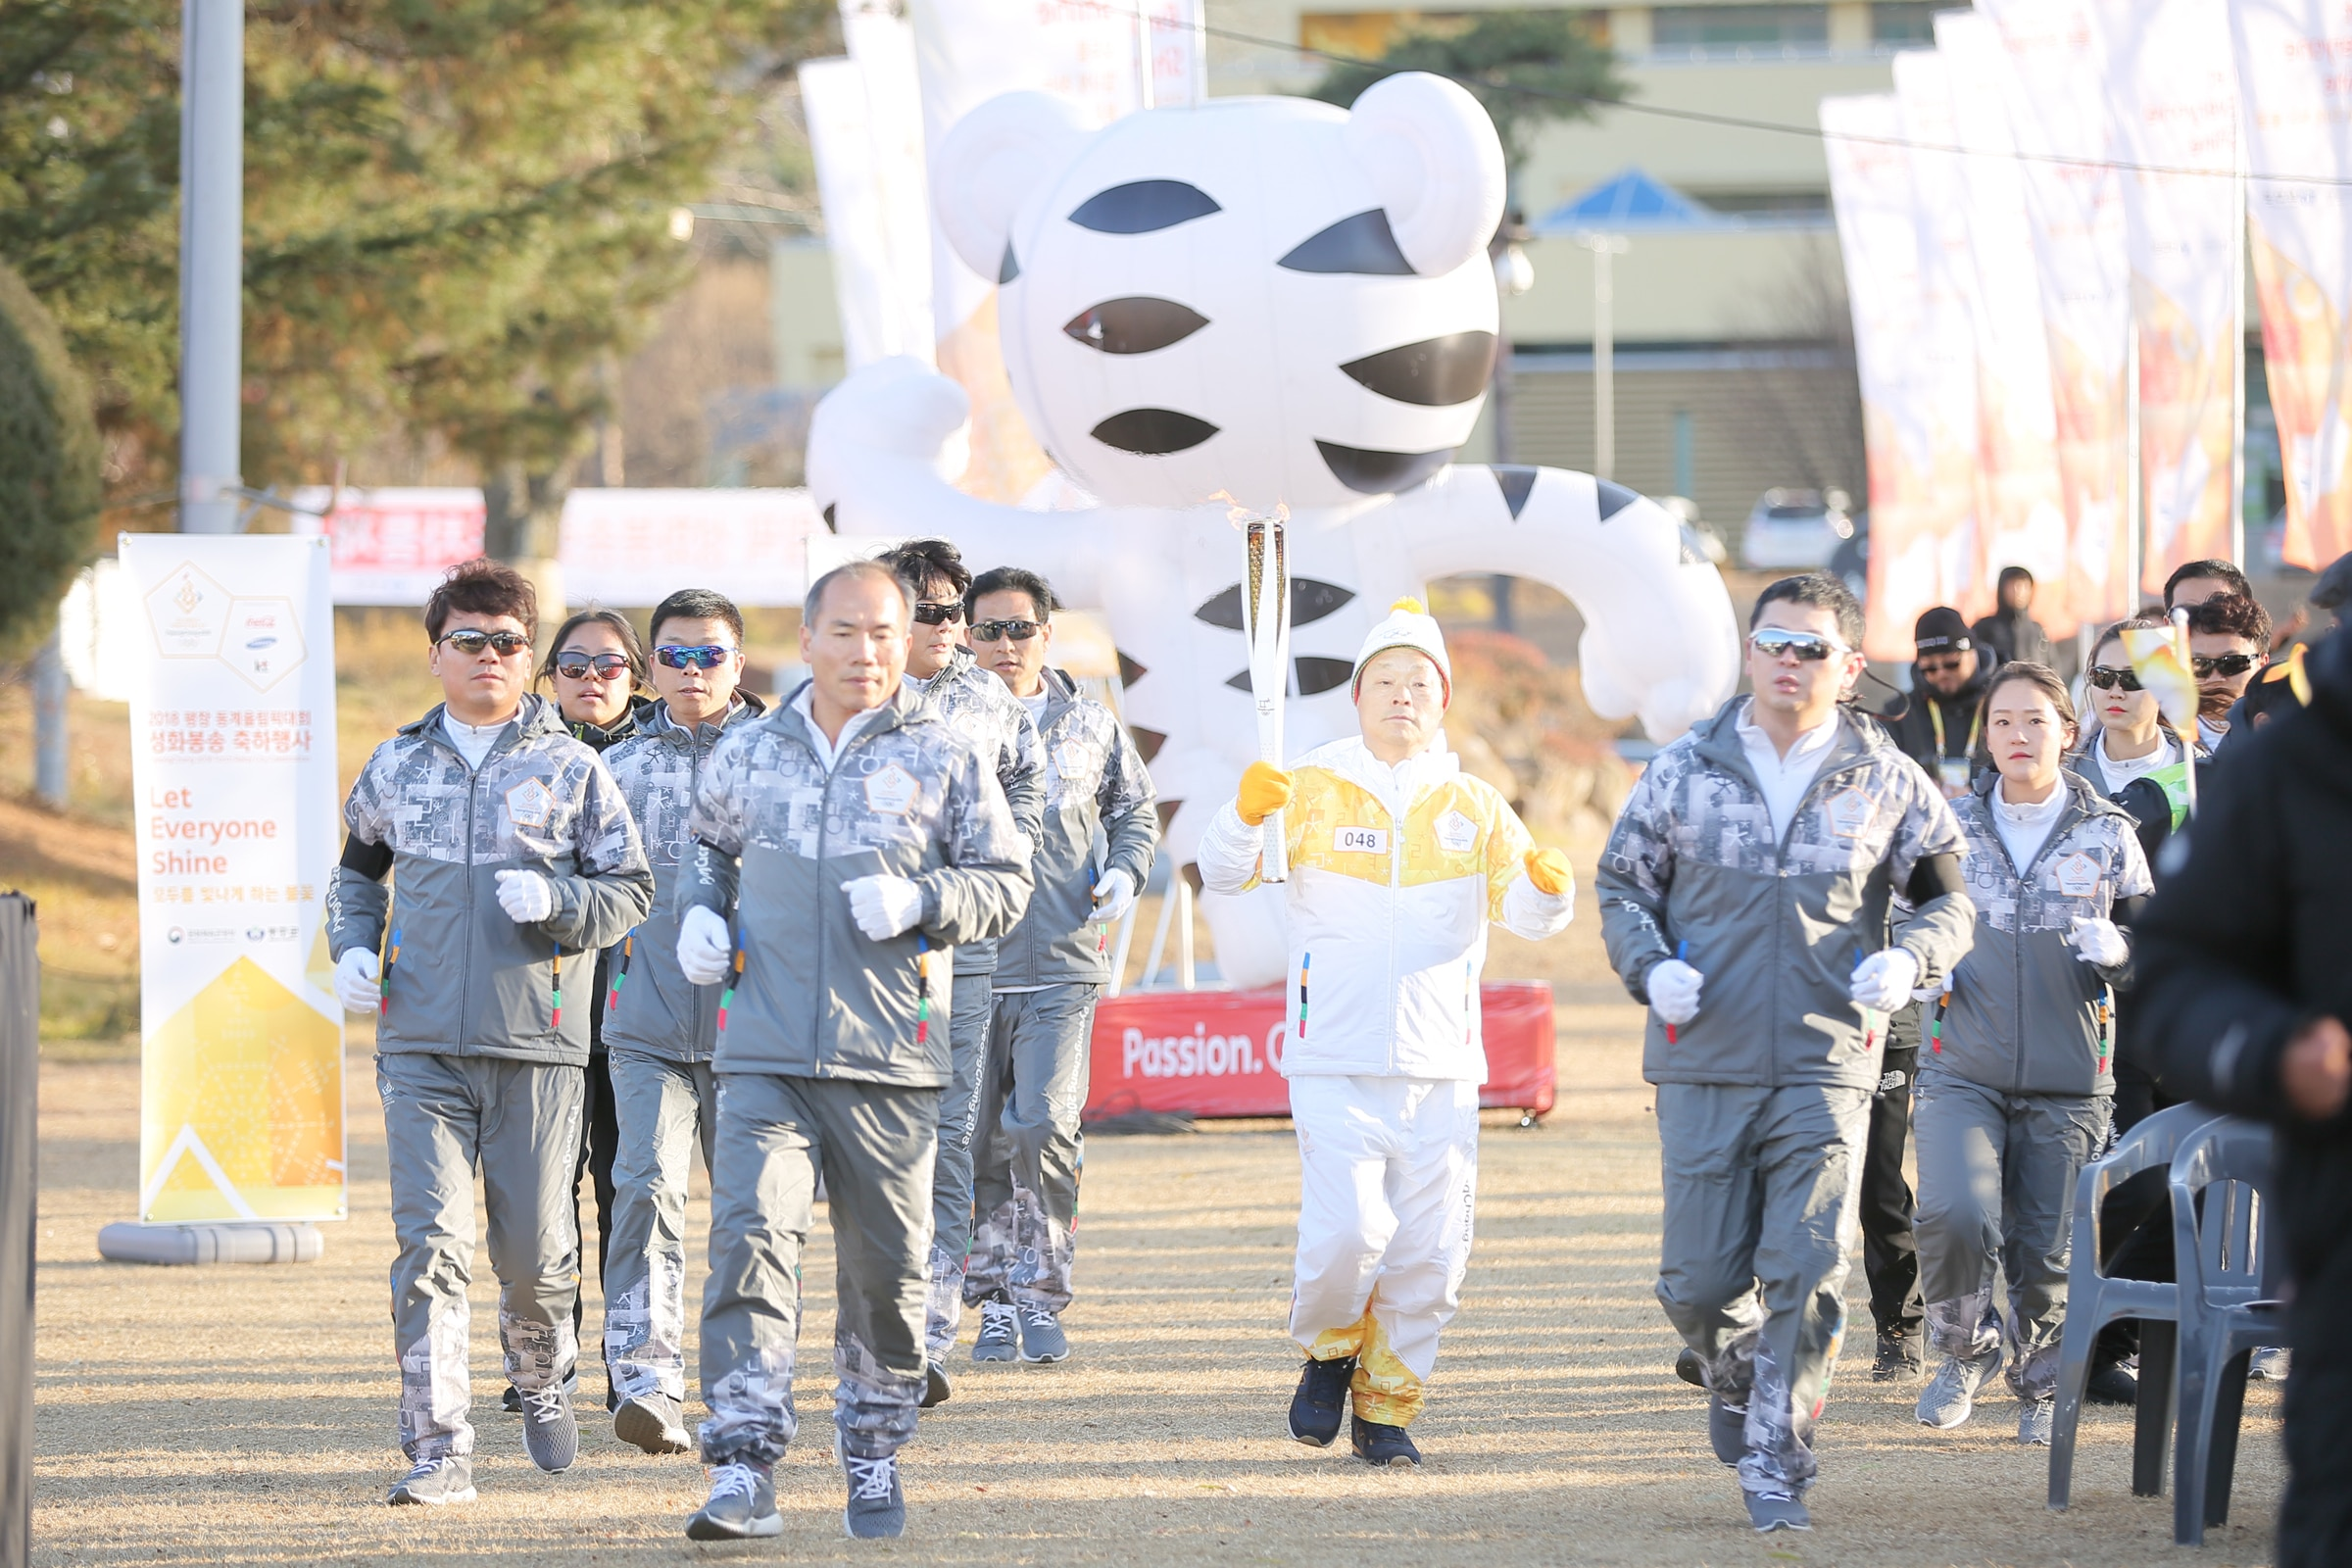 PyeongChang 2018 Olympic Torch Relay - Day 30